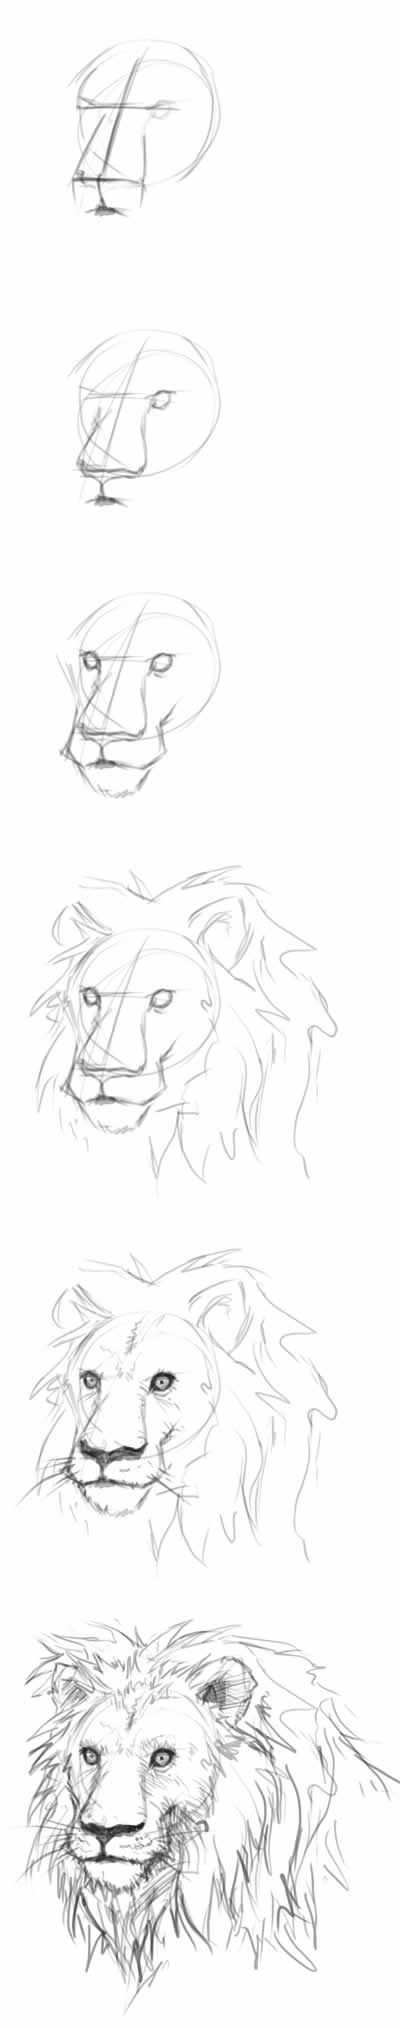 how to draw a lion head step by step (Diy Step Thoughts)